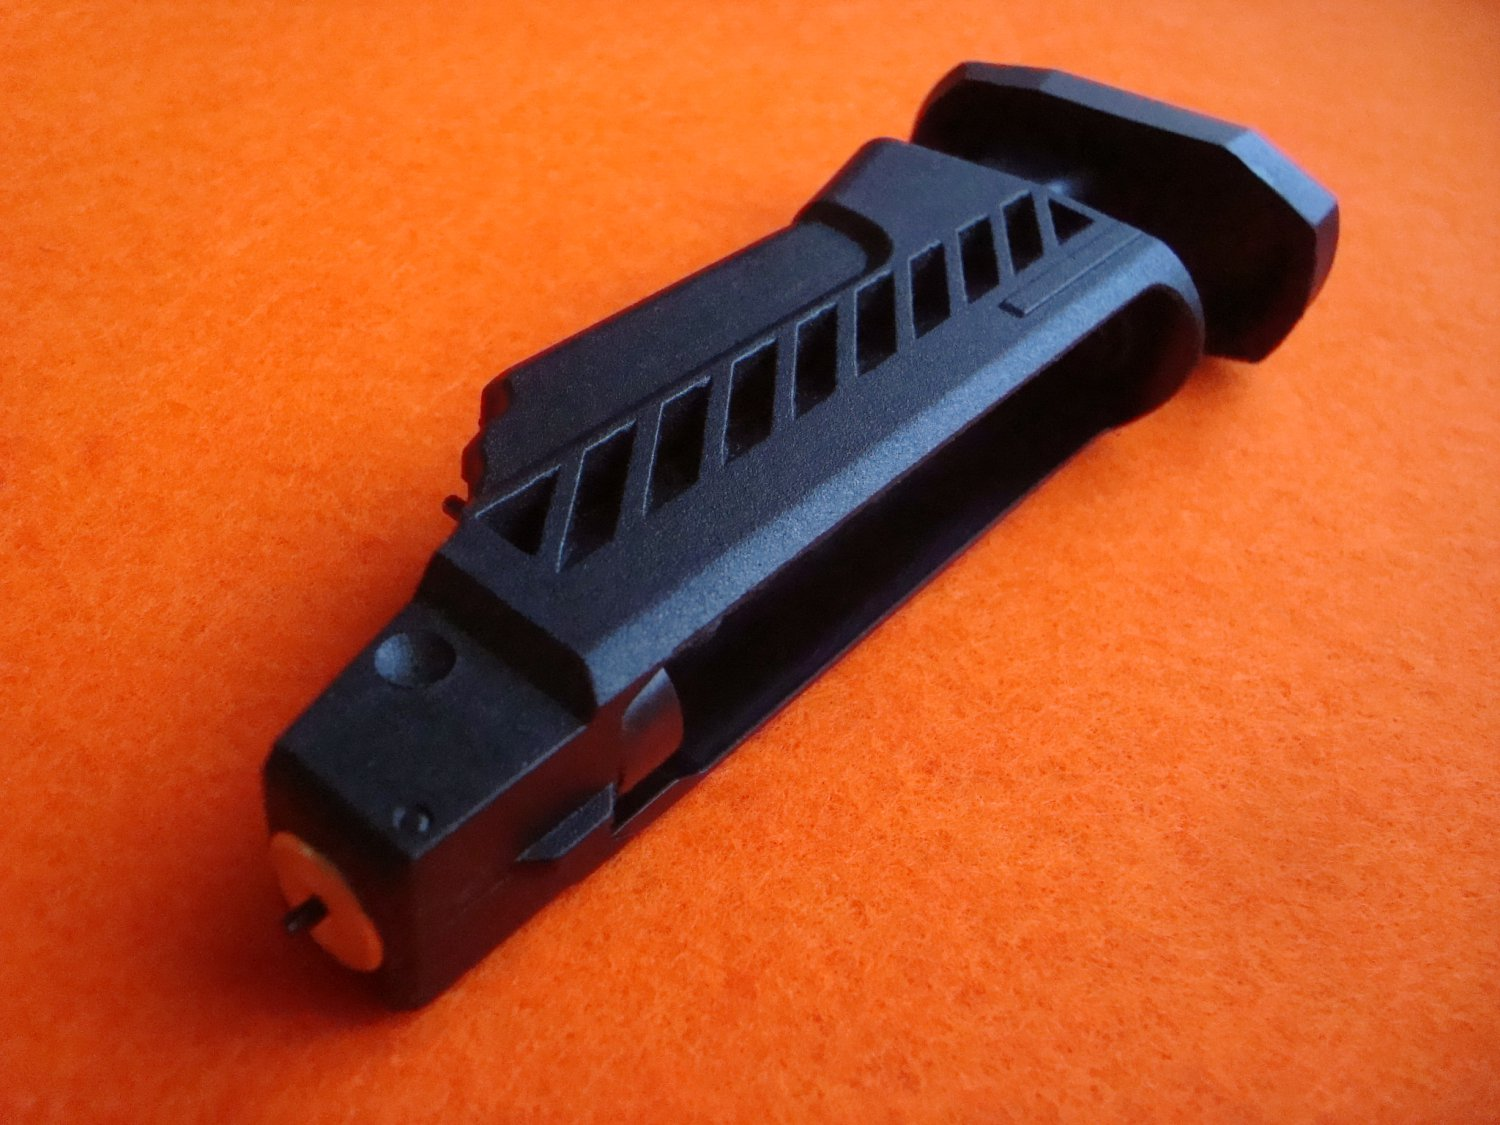 Magazine mp-655k corps with build-in modern valve and removable part on button, piece made to order